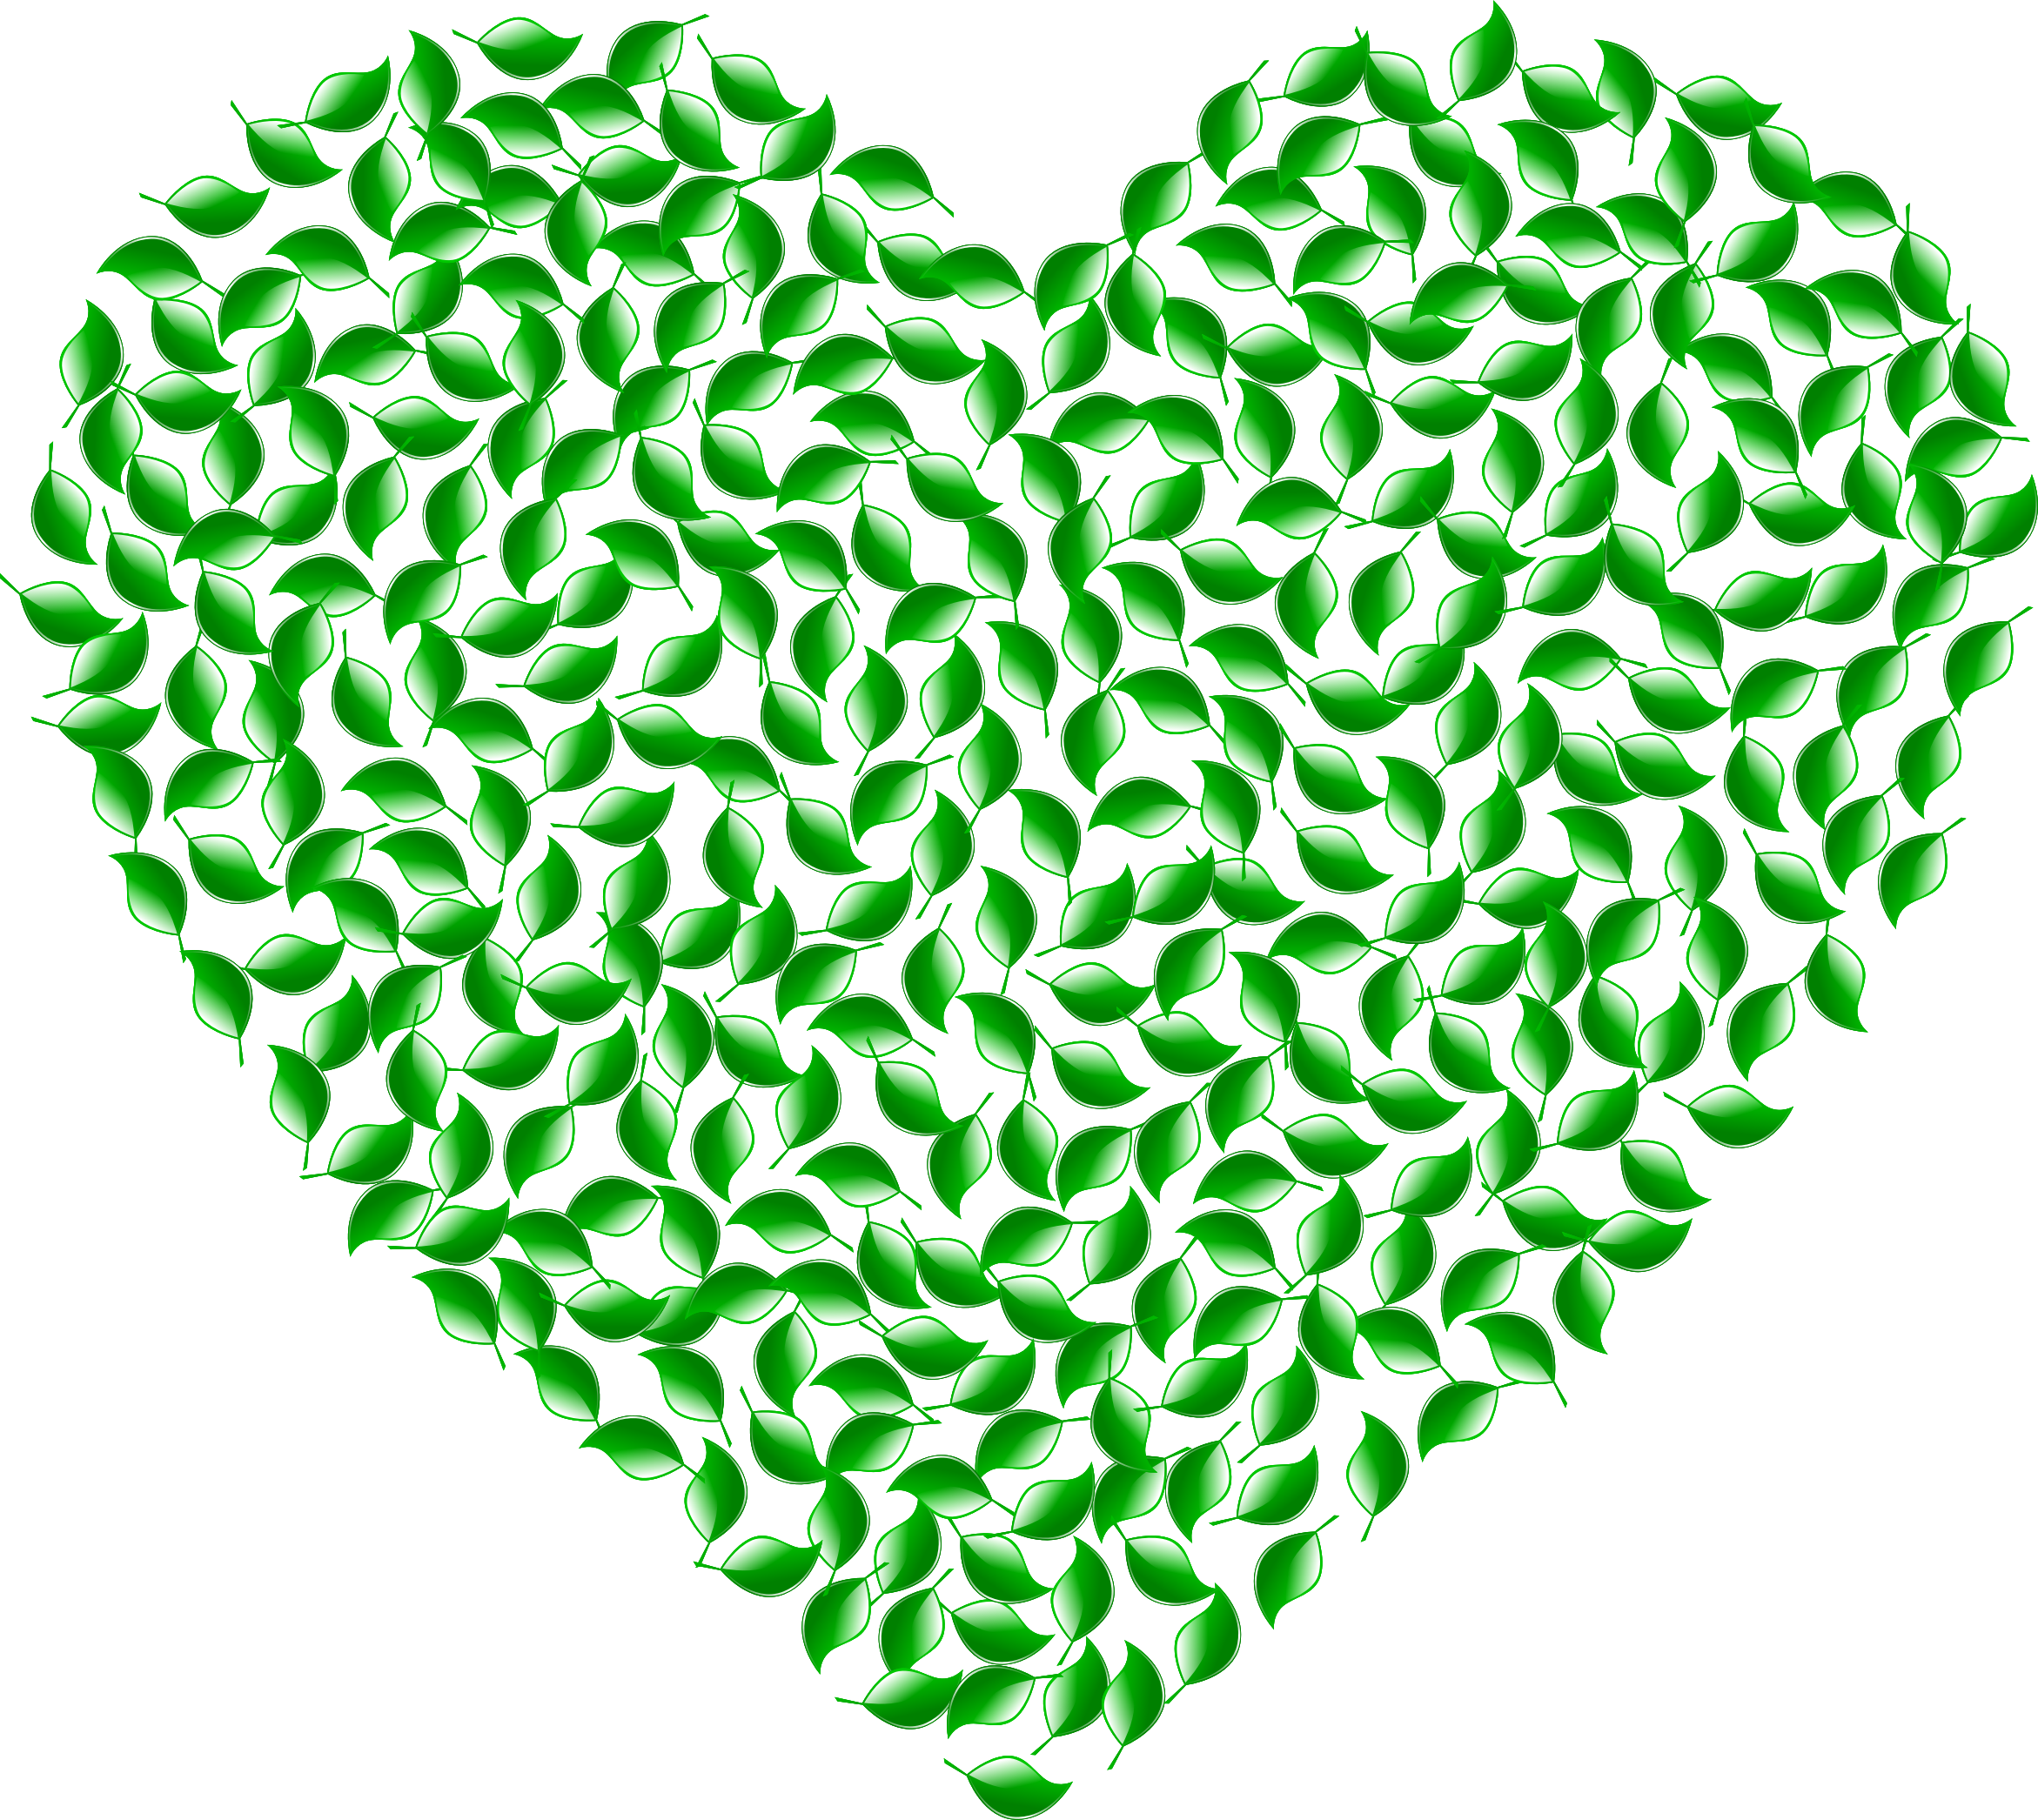 Green Heart by GDJ